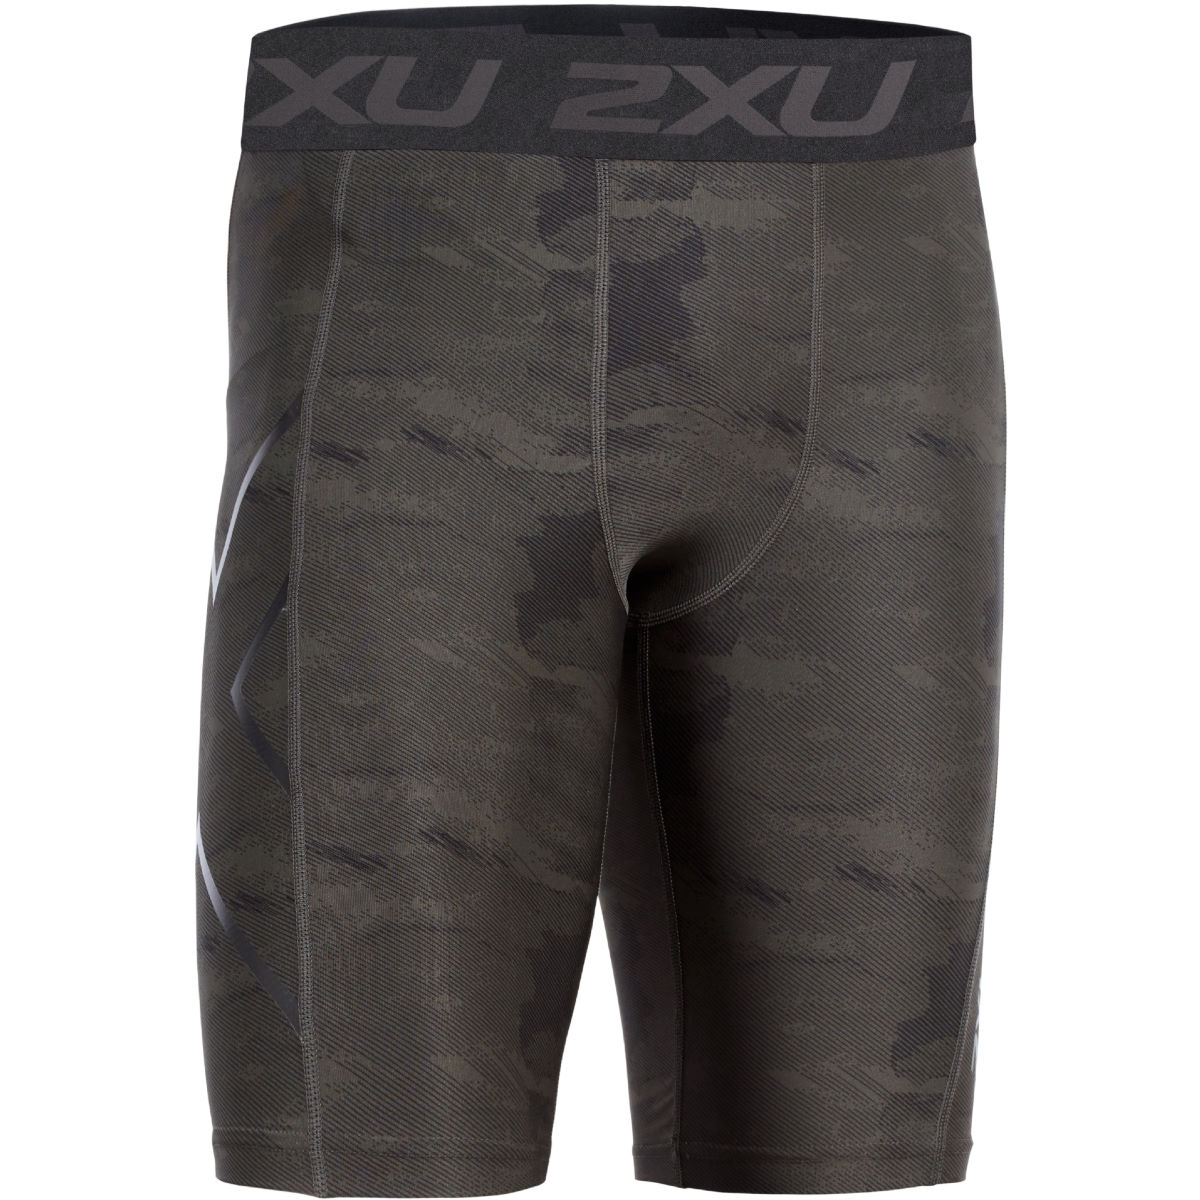 2XU Accelerate Print Compression Short   Compression Shorts